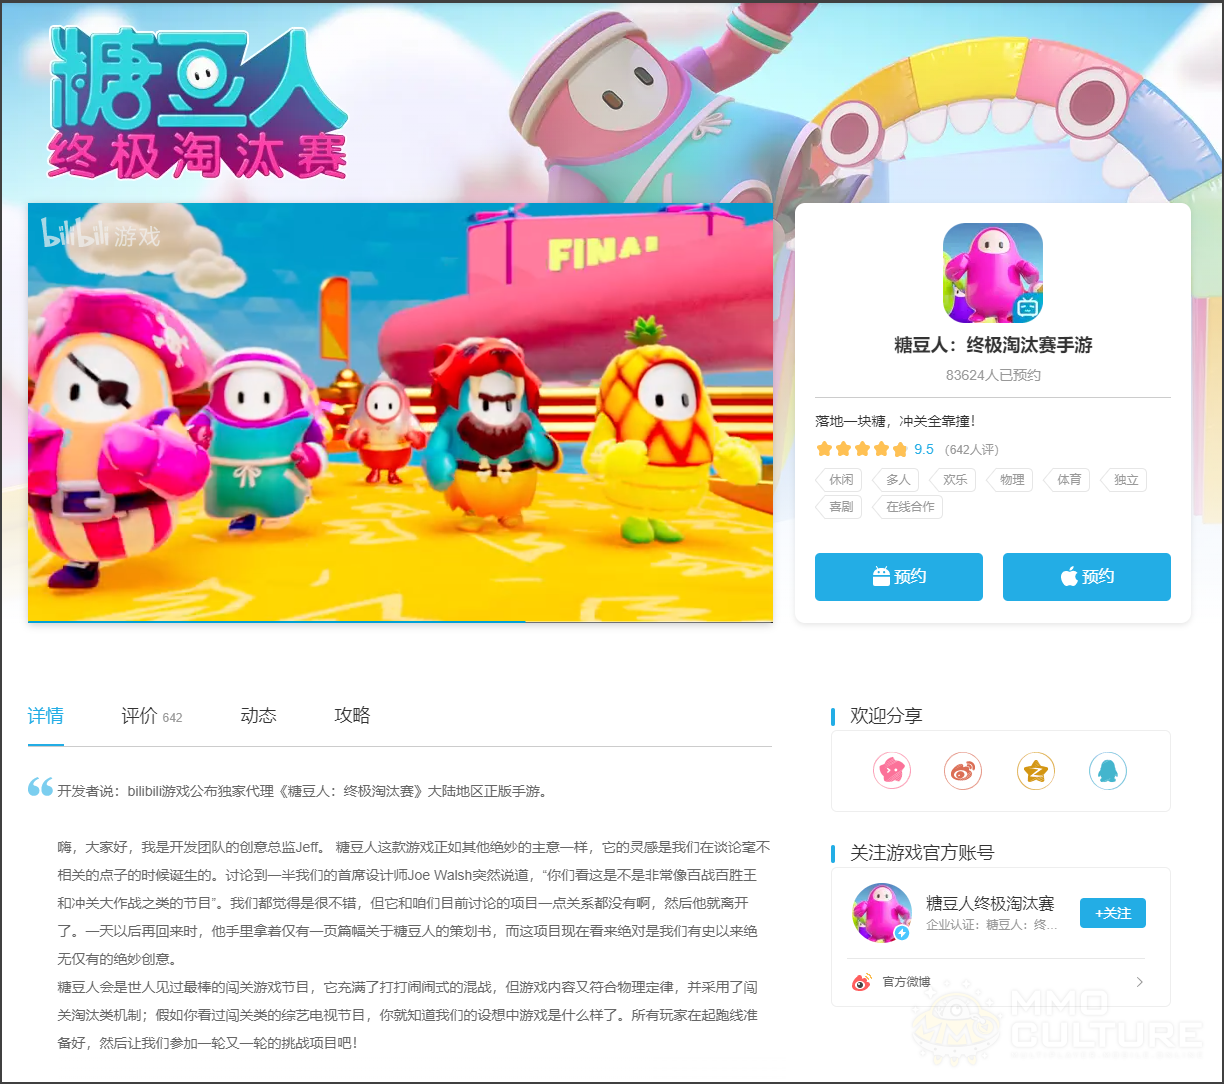 Fall Guys Mobile Version Of Popular Game Announced For China Market Mmo Culture